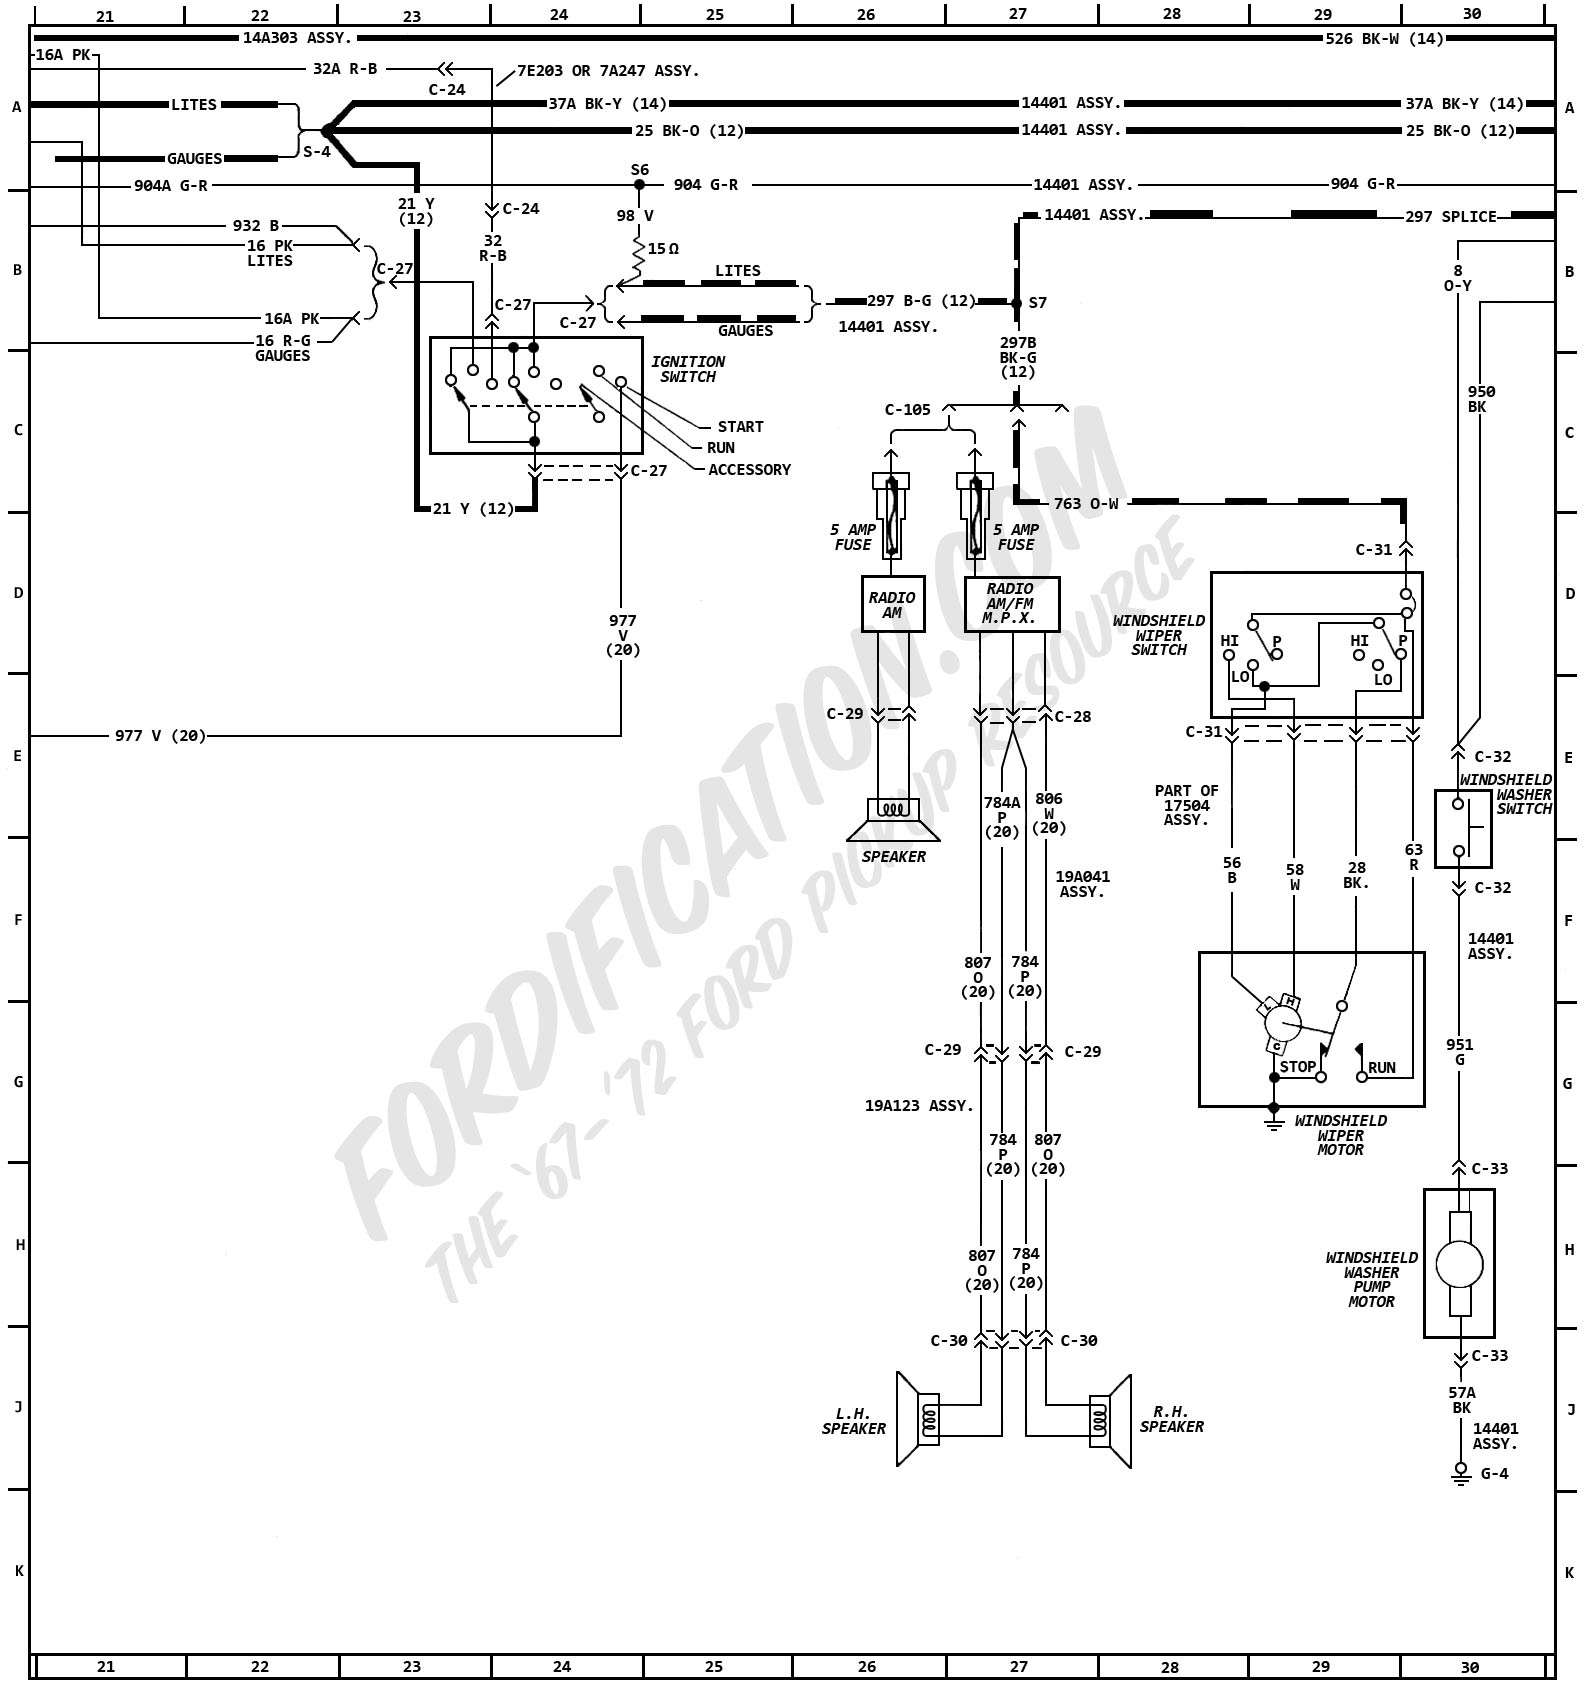 89 94 Ford Thunderbird Wiring Diagrams Content Resource Of 1966 Diagram Auto 72 Schematic Rh Theodocle Fion Com 1988 Transmission 1996 Radio